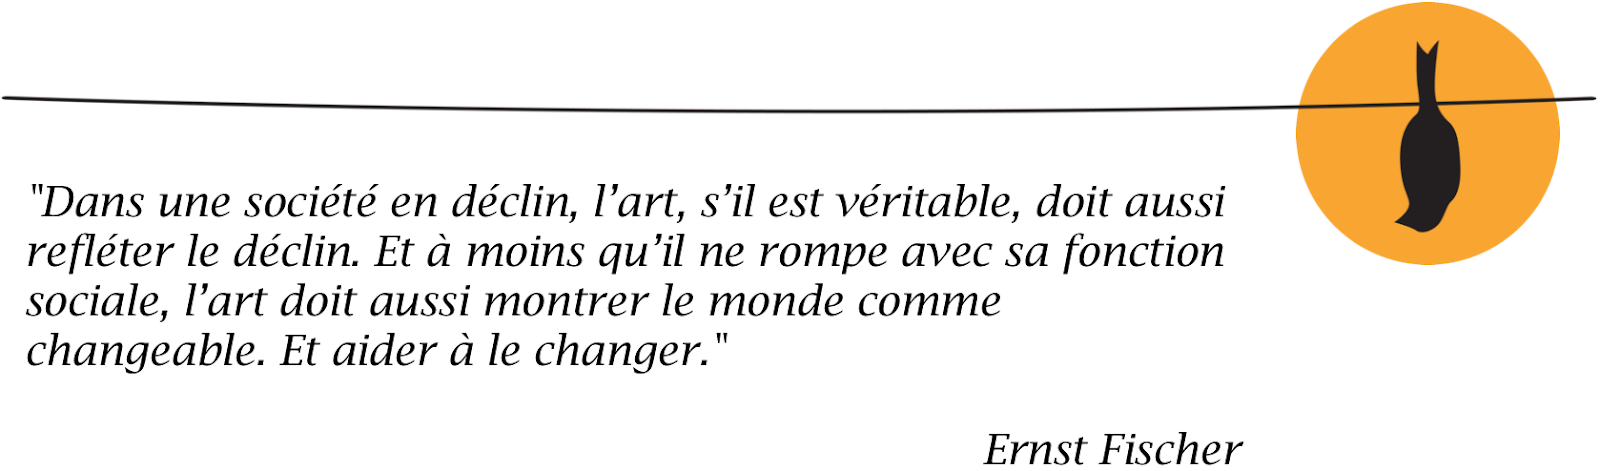 Citation FR.png